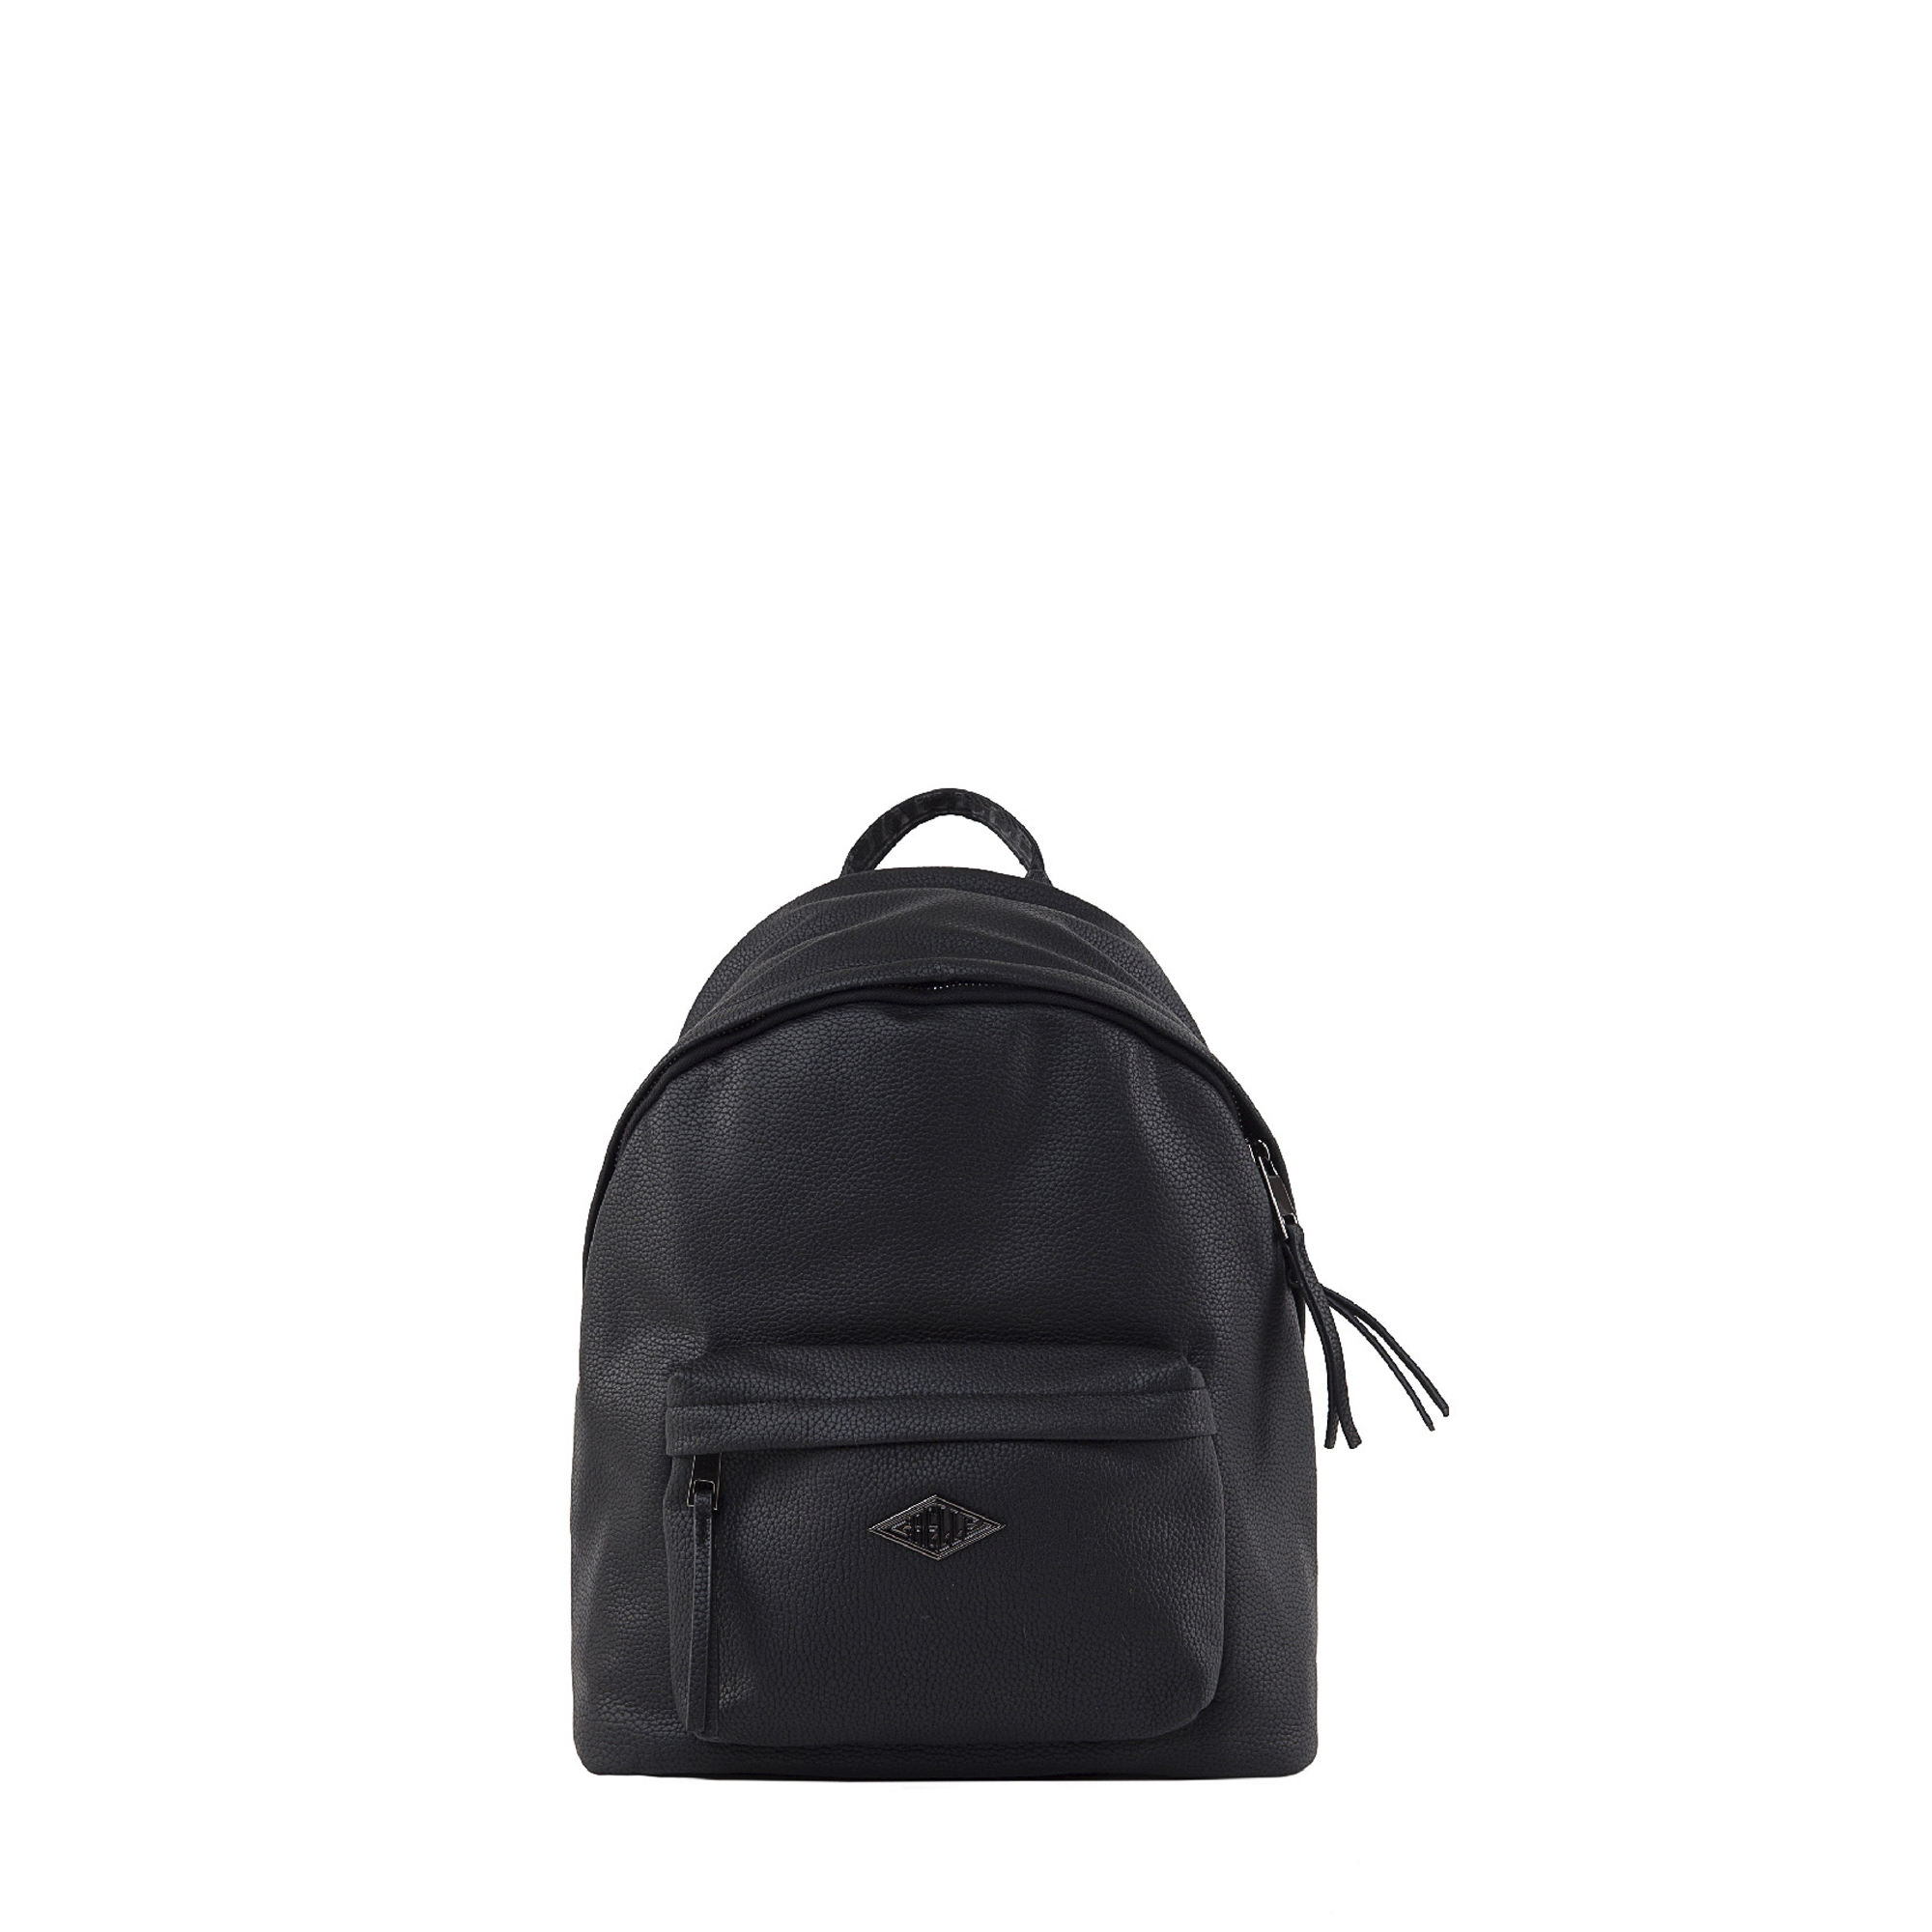 BACKPACK - GBUA451 - GAELLE PARIS